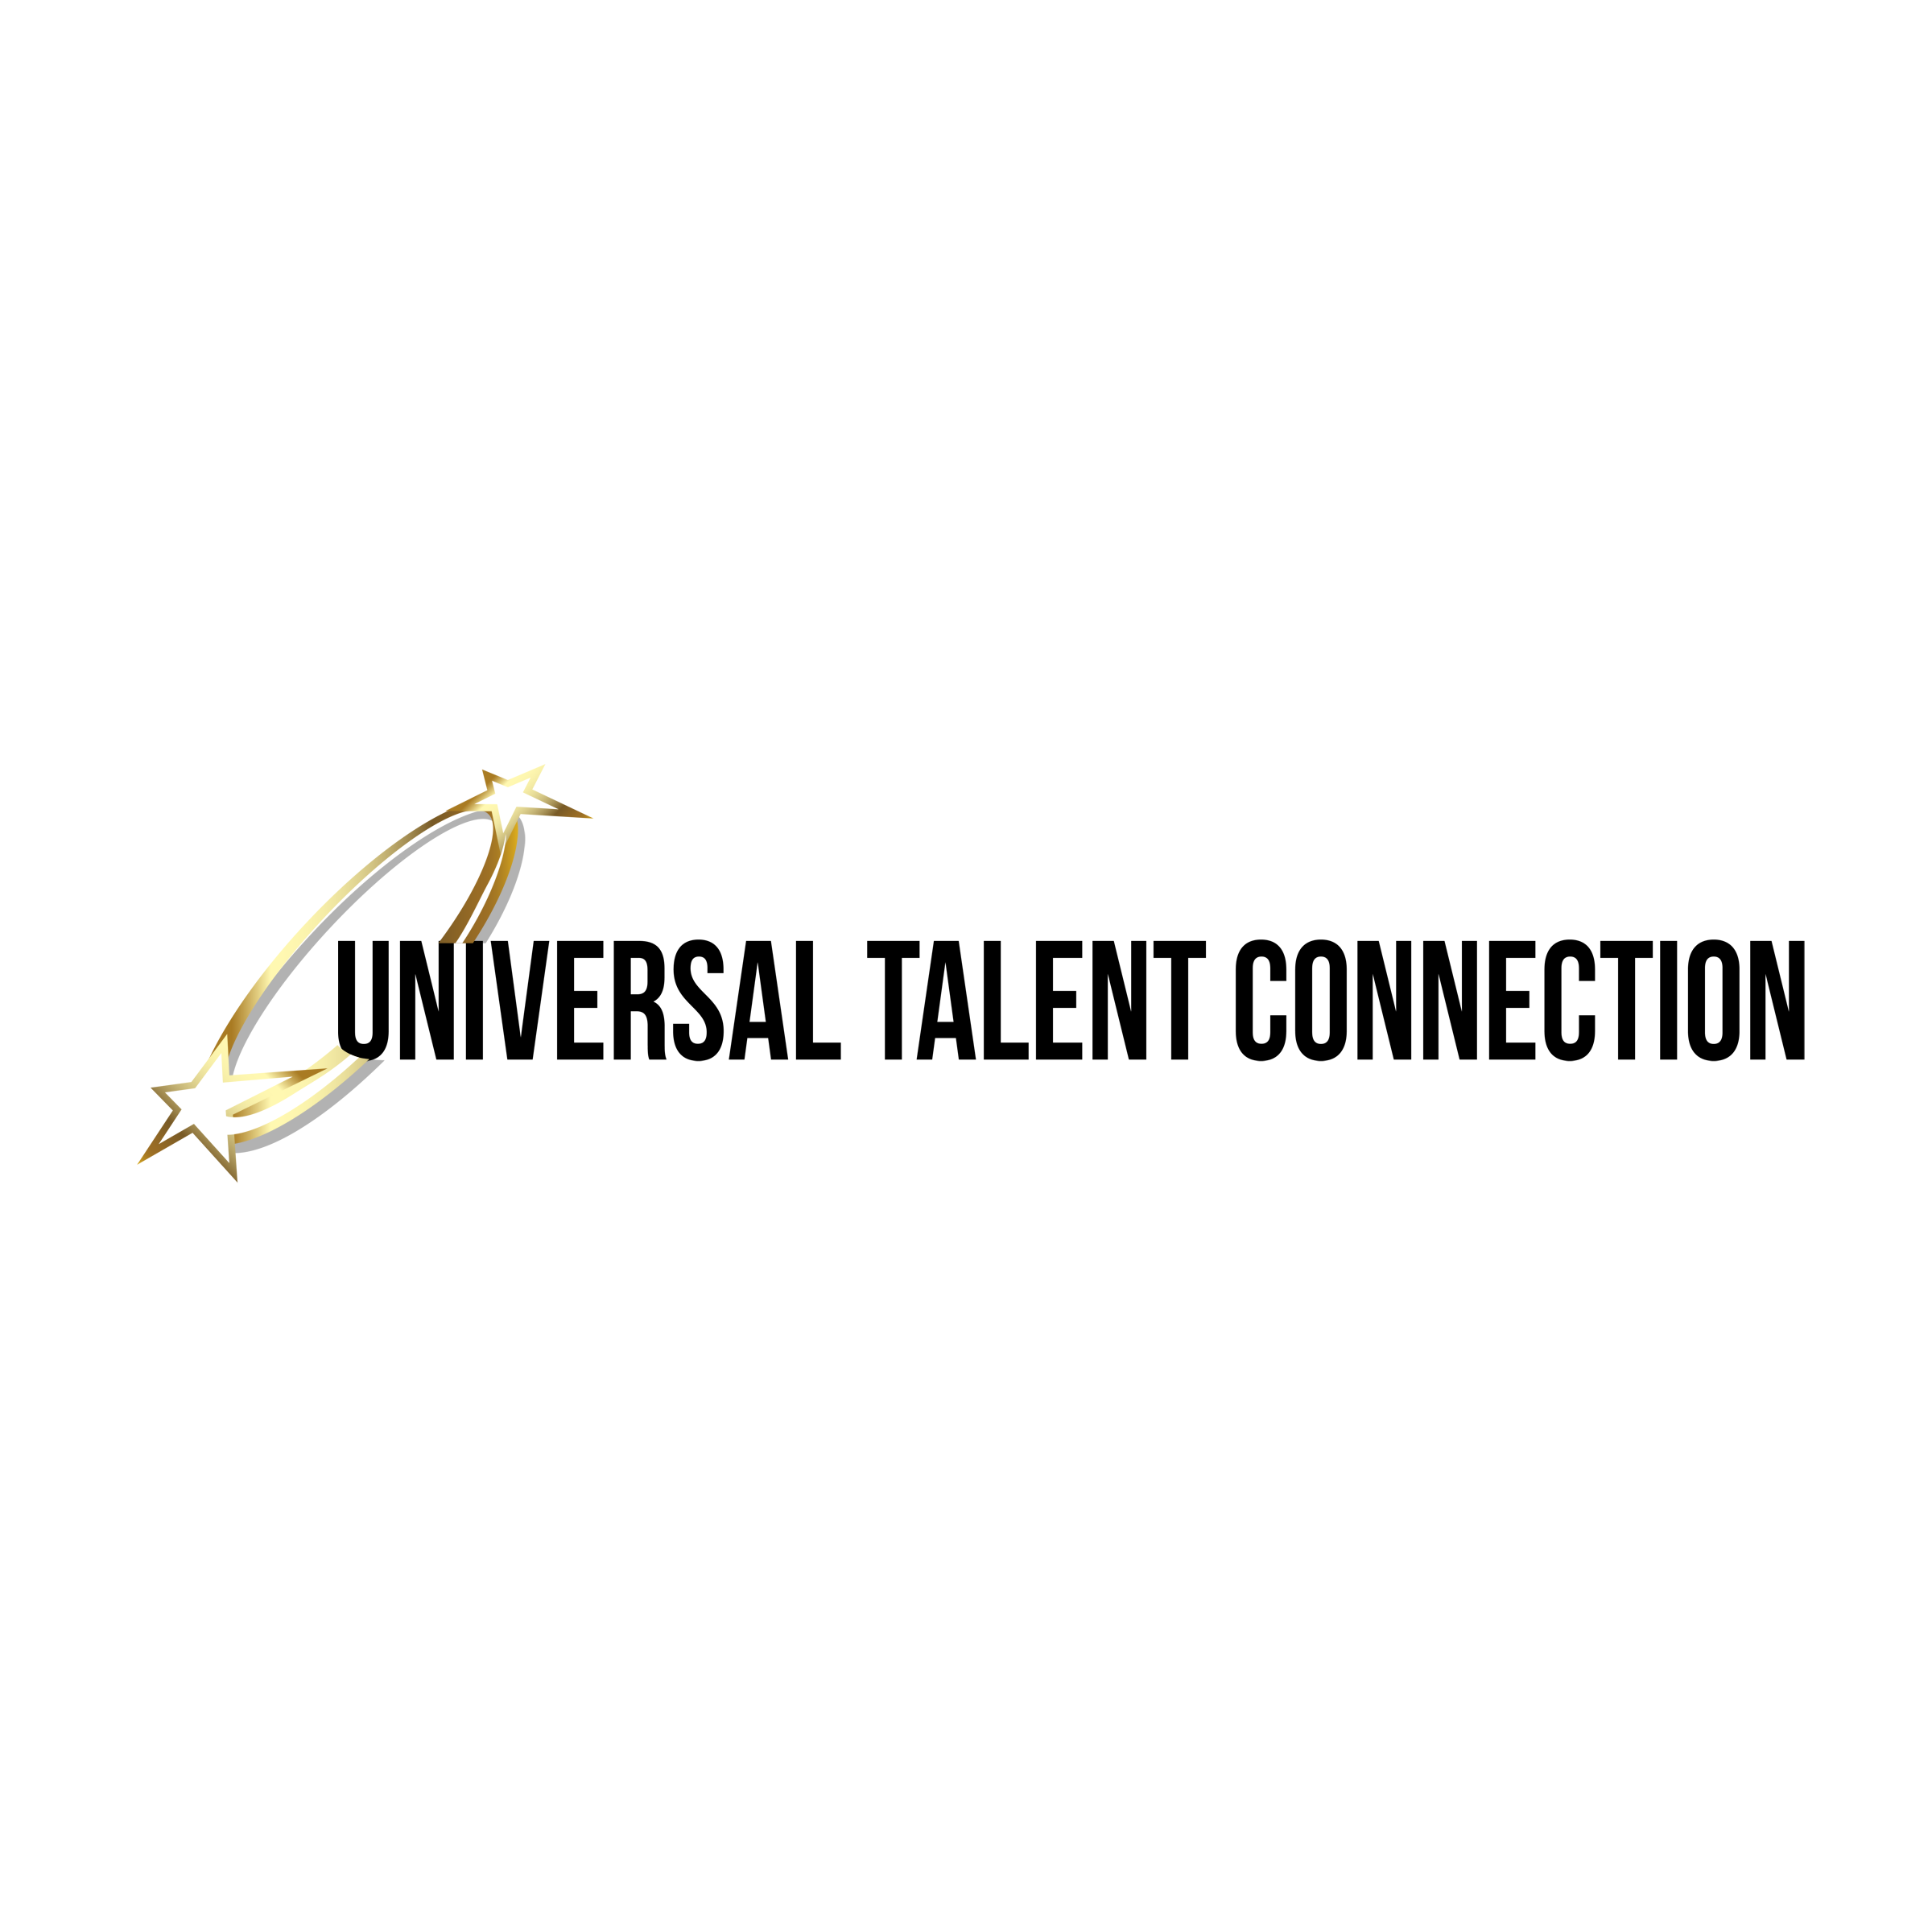 Universal Talent Connection logo